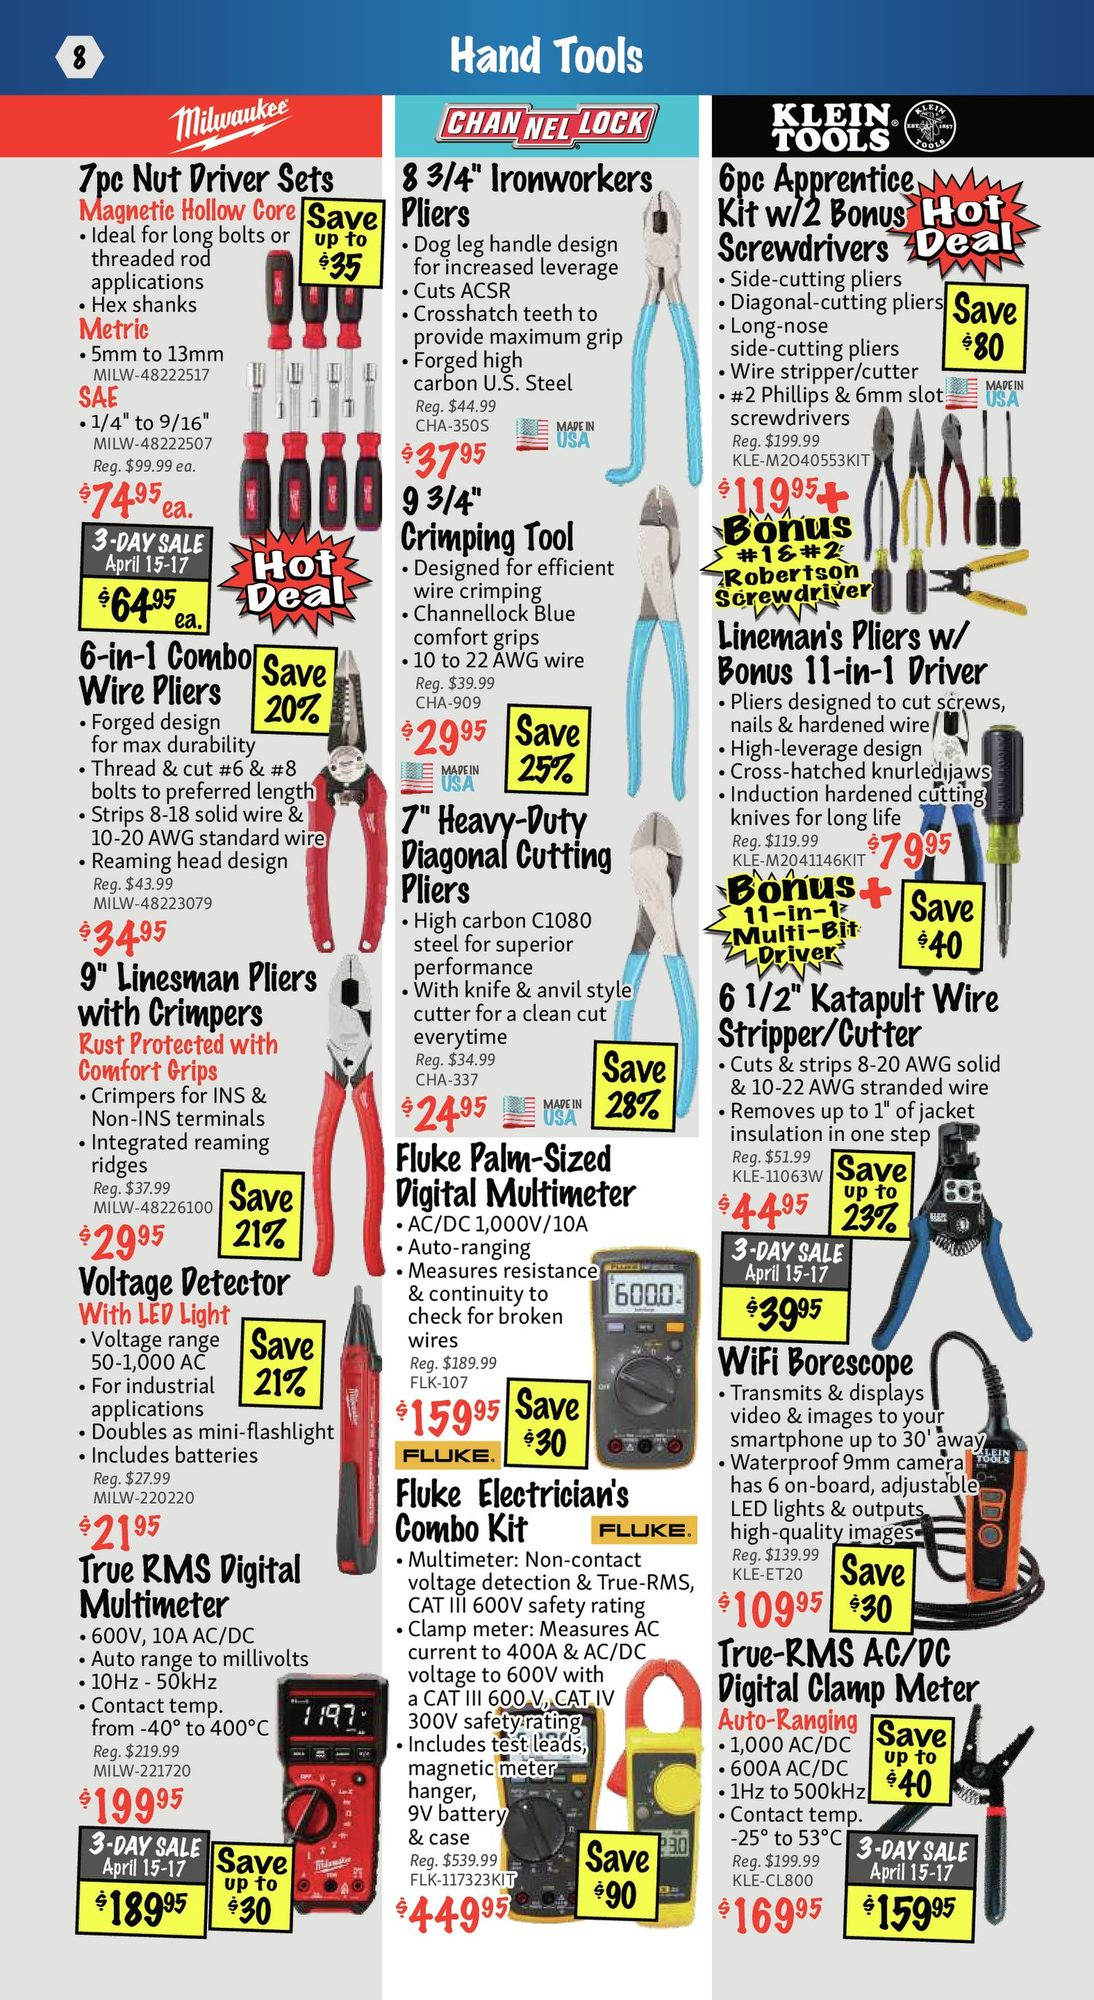 KMS Tools - Hand Tools, Air Tools & Compressor Sale - Page 8